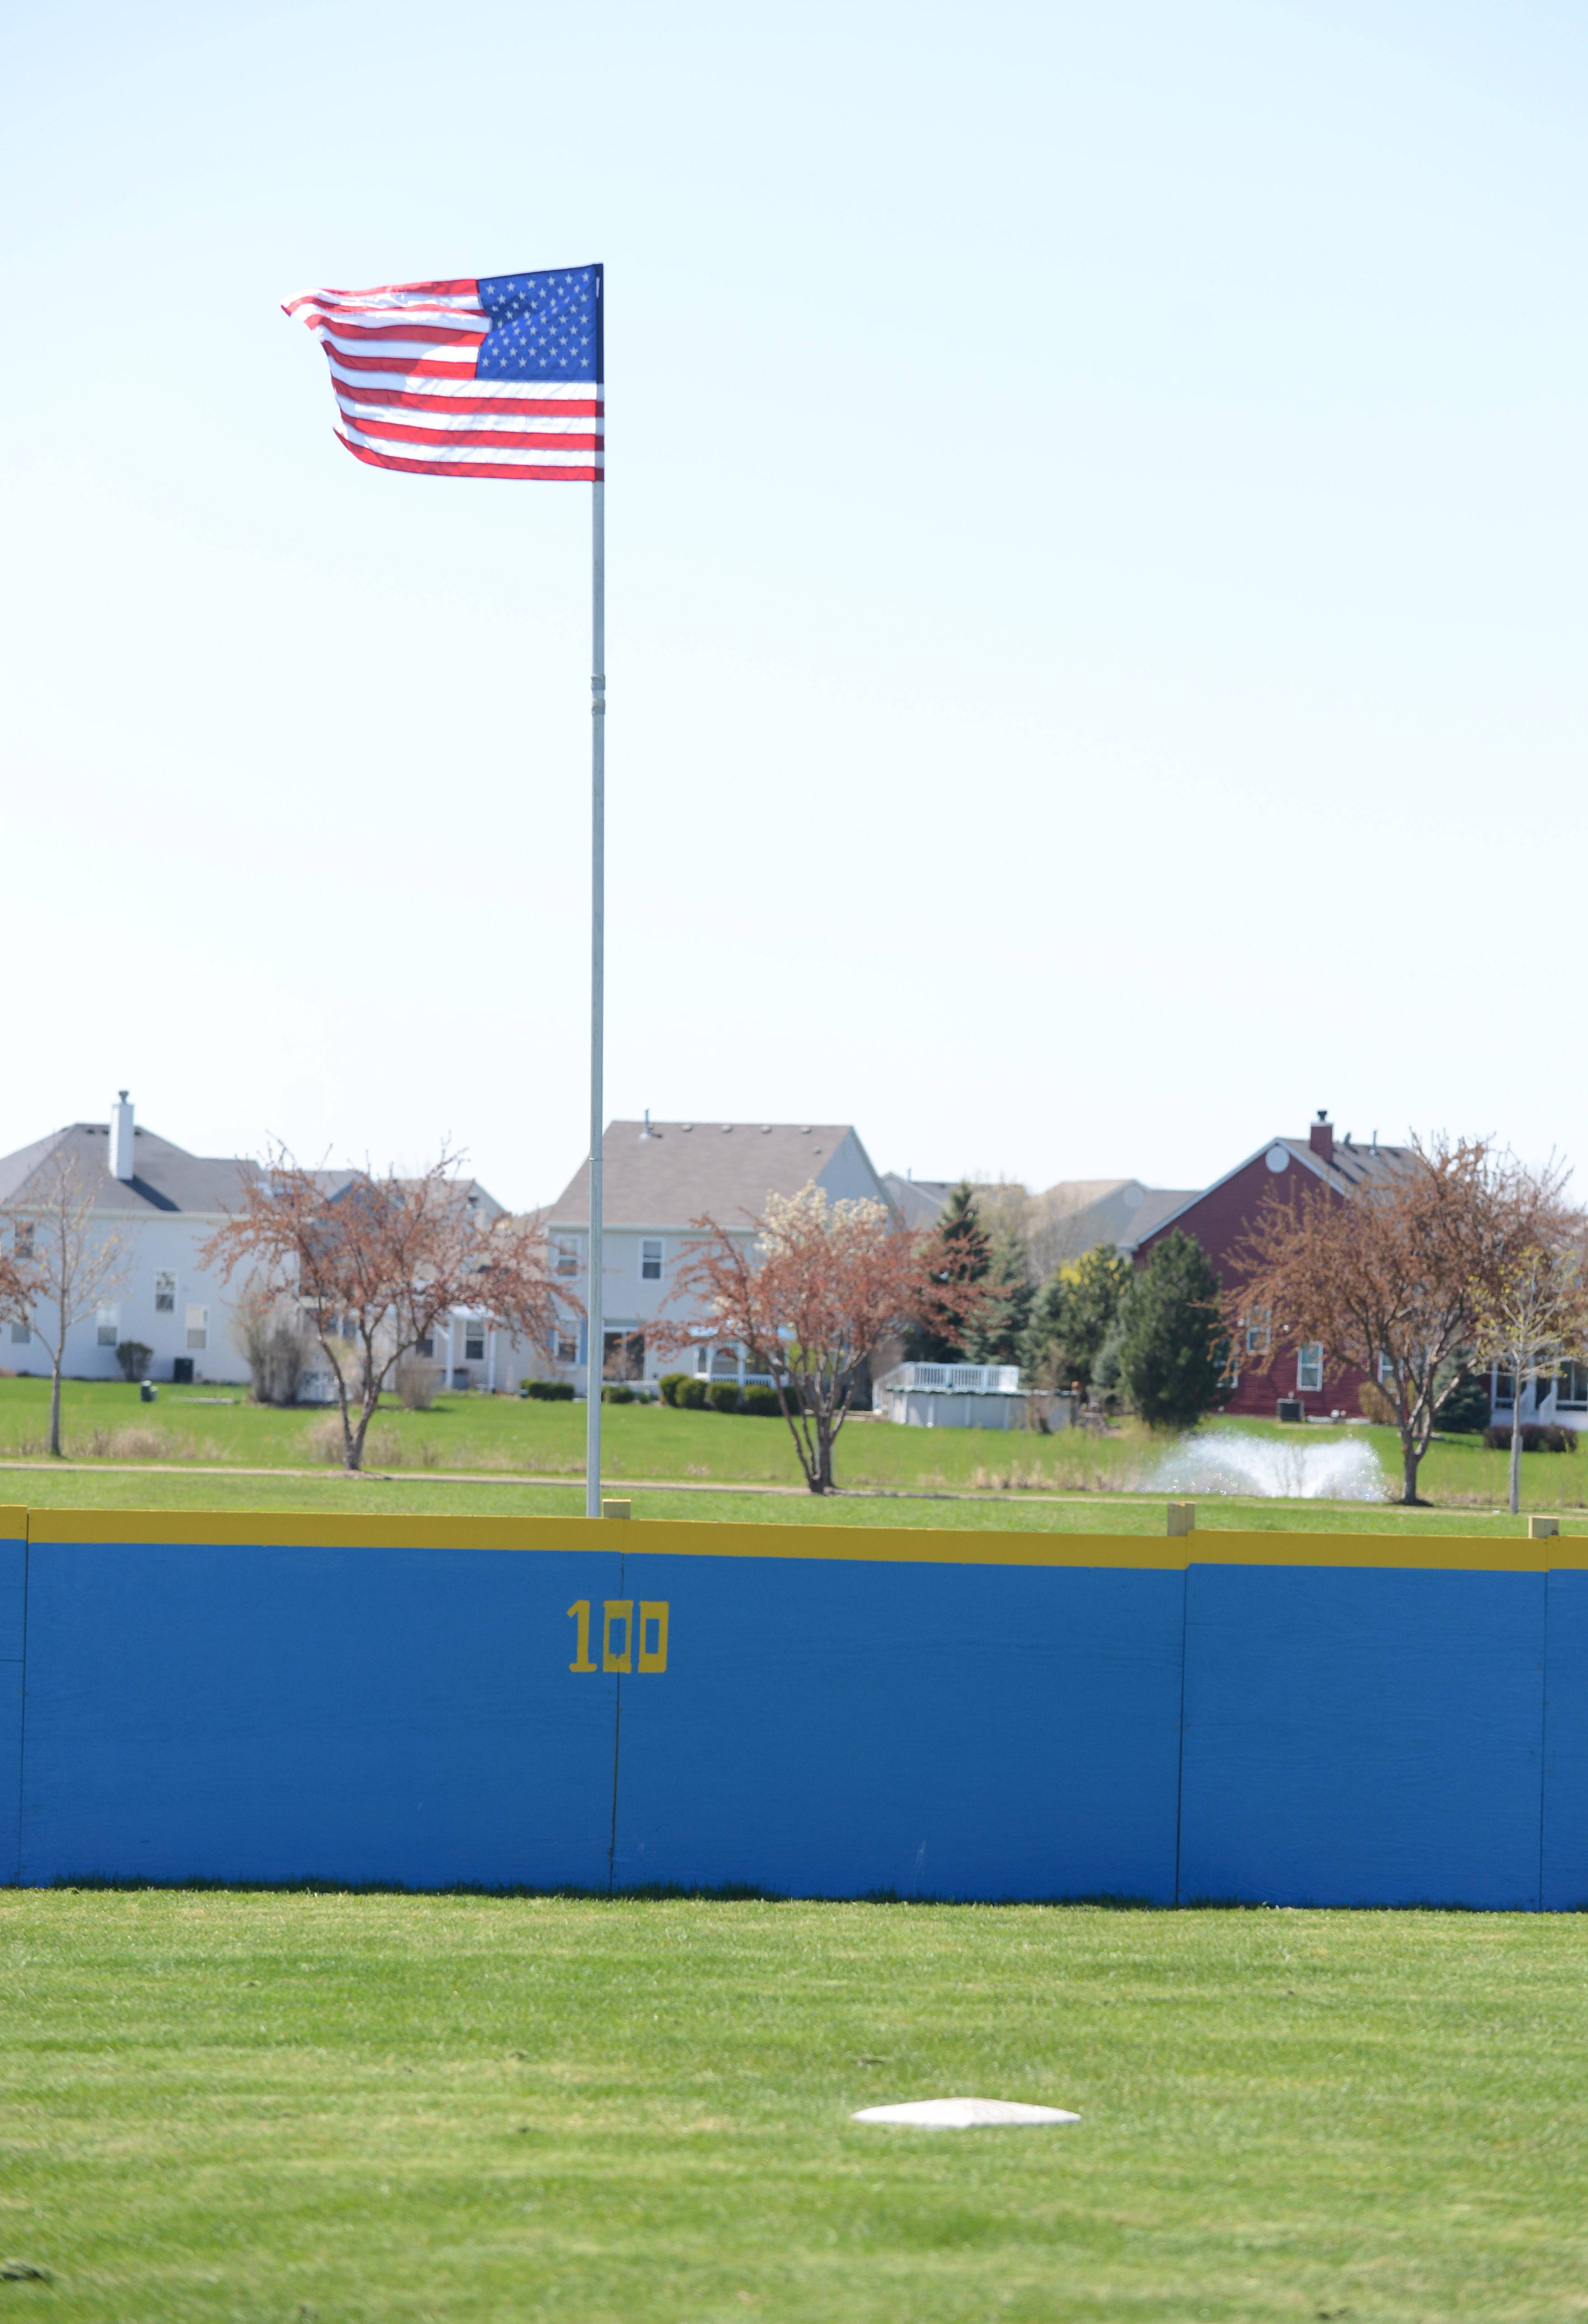 The West Chicago Park District has a Wiffle ball field at Cornerstone Lakes Park on Smith Road.